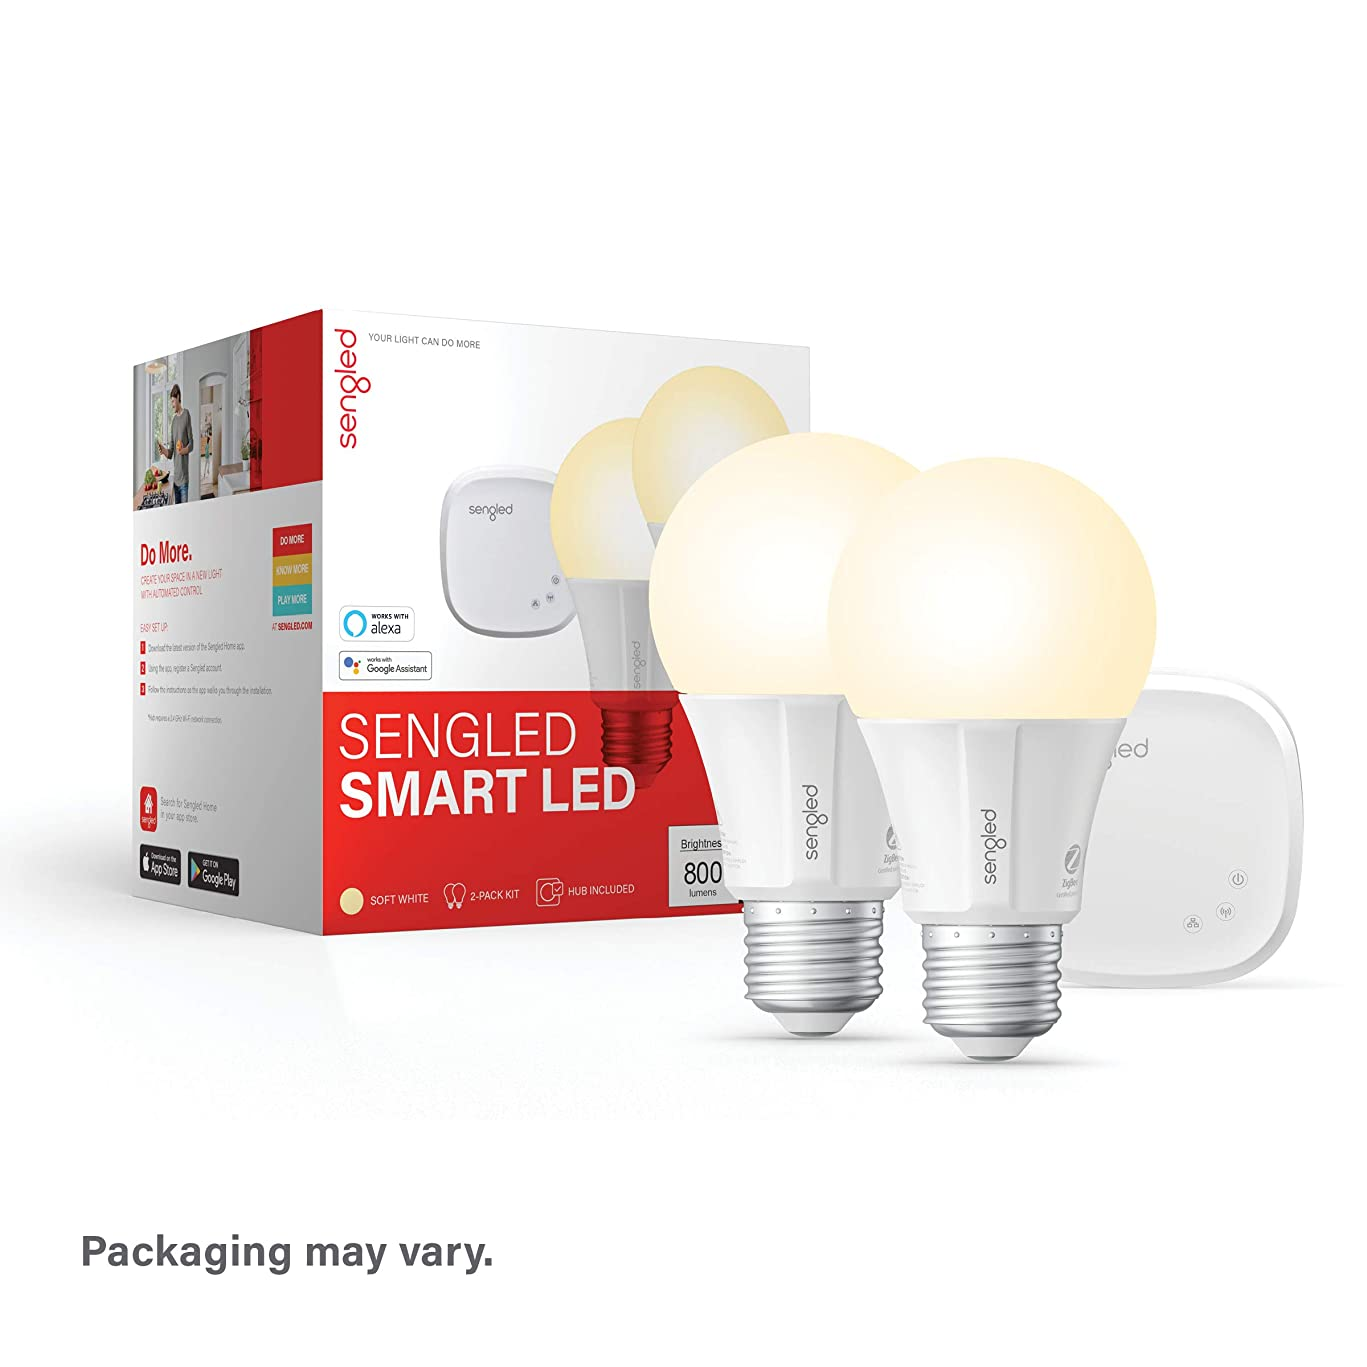 Sengled Smart LED Soft White A19 Starter Kit, 2700K 60W Equivalent, 2 Light Bulbs & Hub, Works with Alexa & Google Assistant